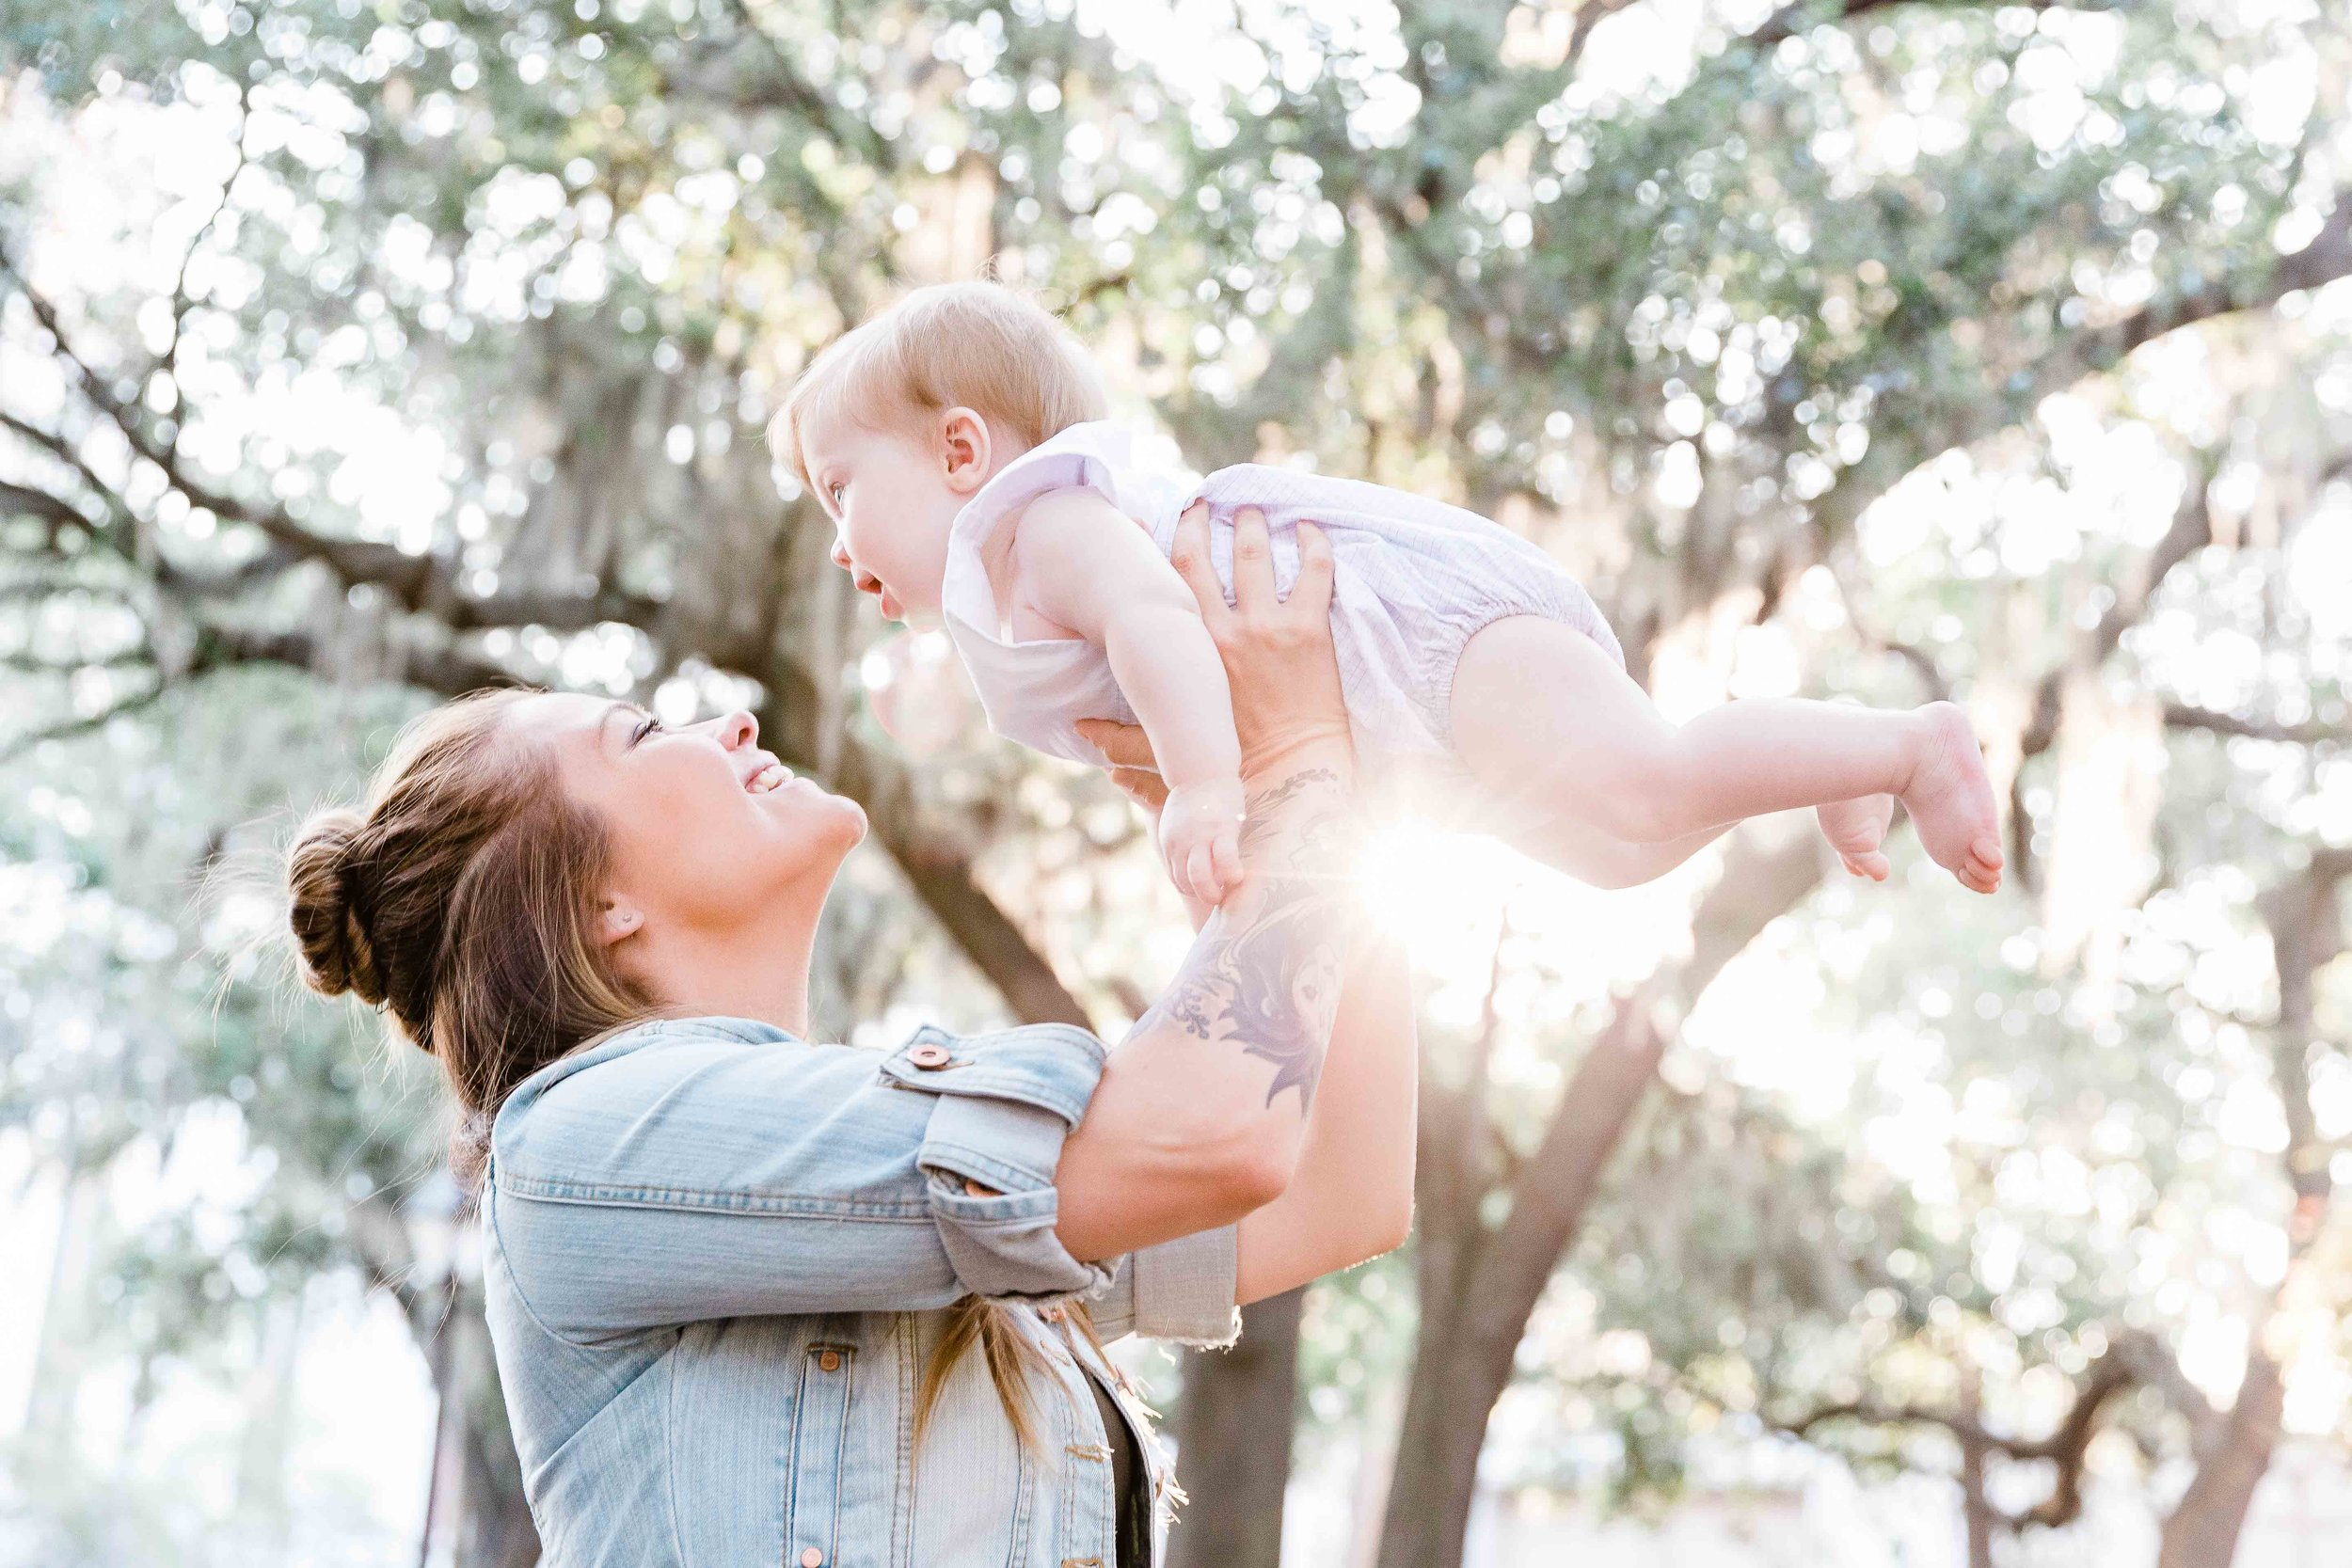 20190526Georgia-Savannah-lafayette square-brittany sims mothers day session07.jpg